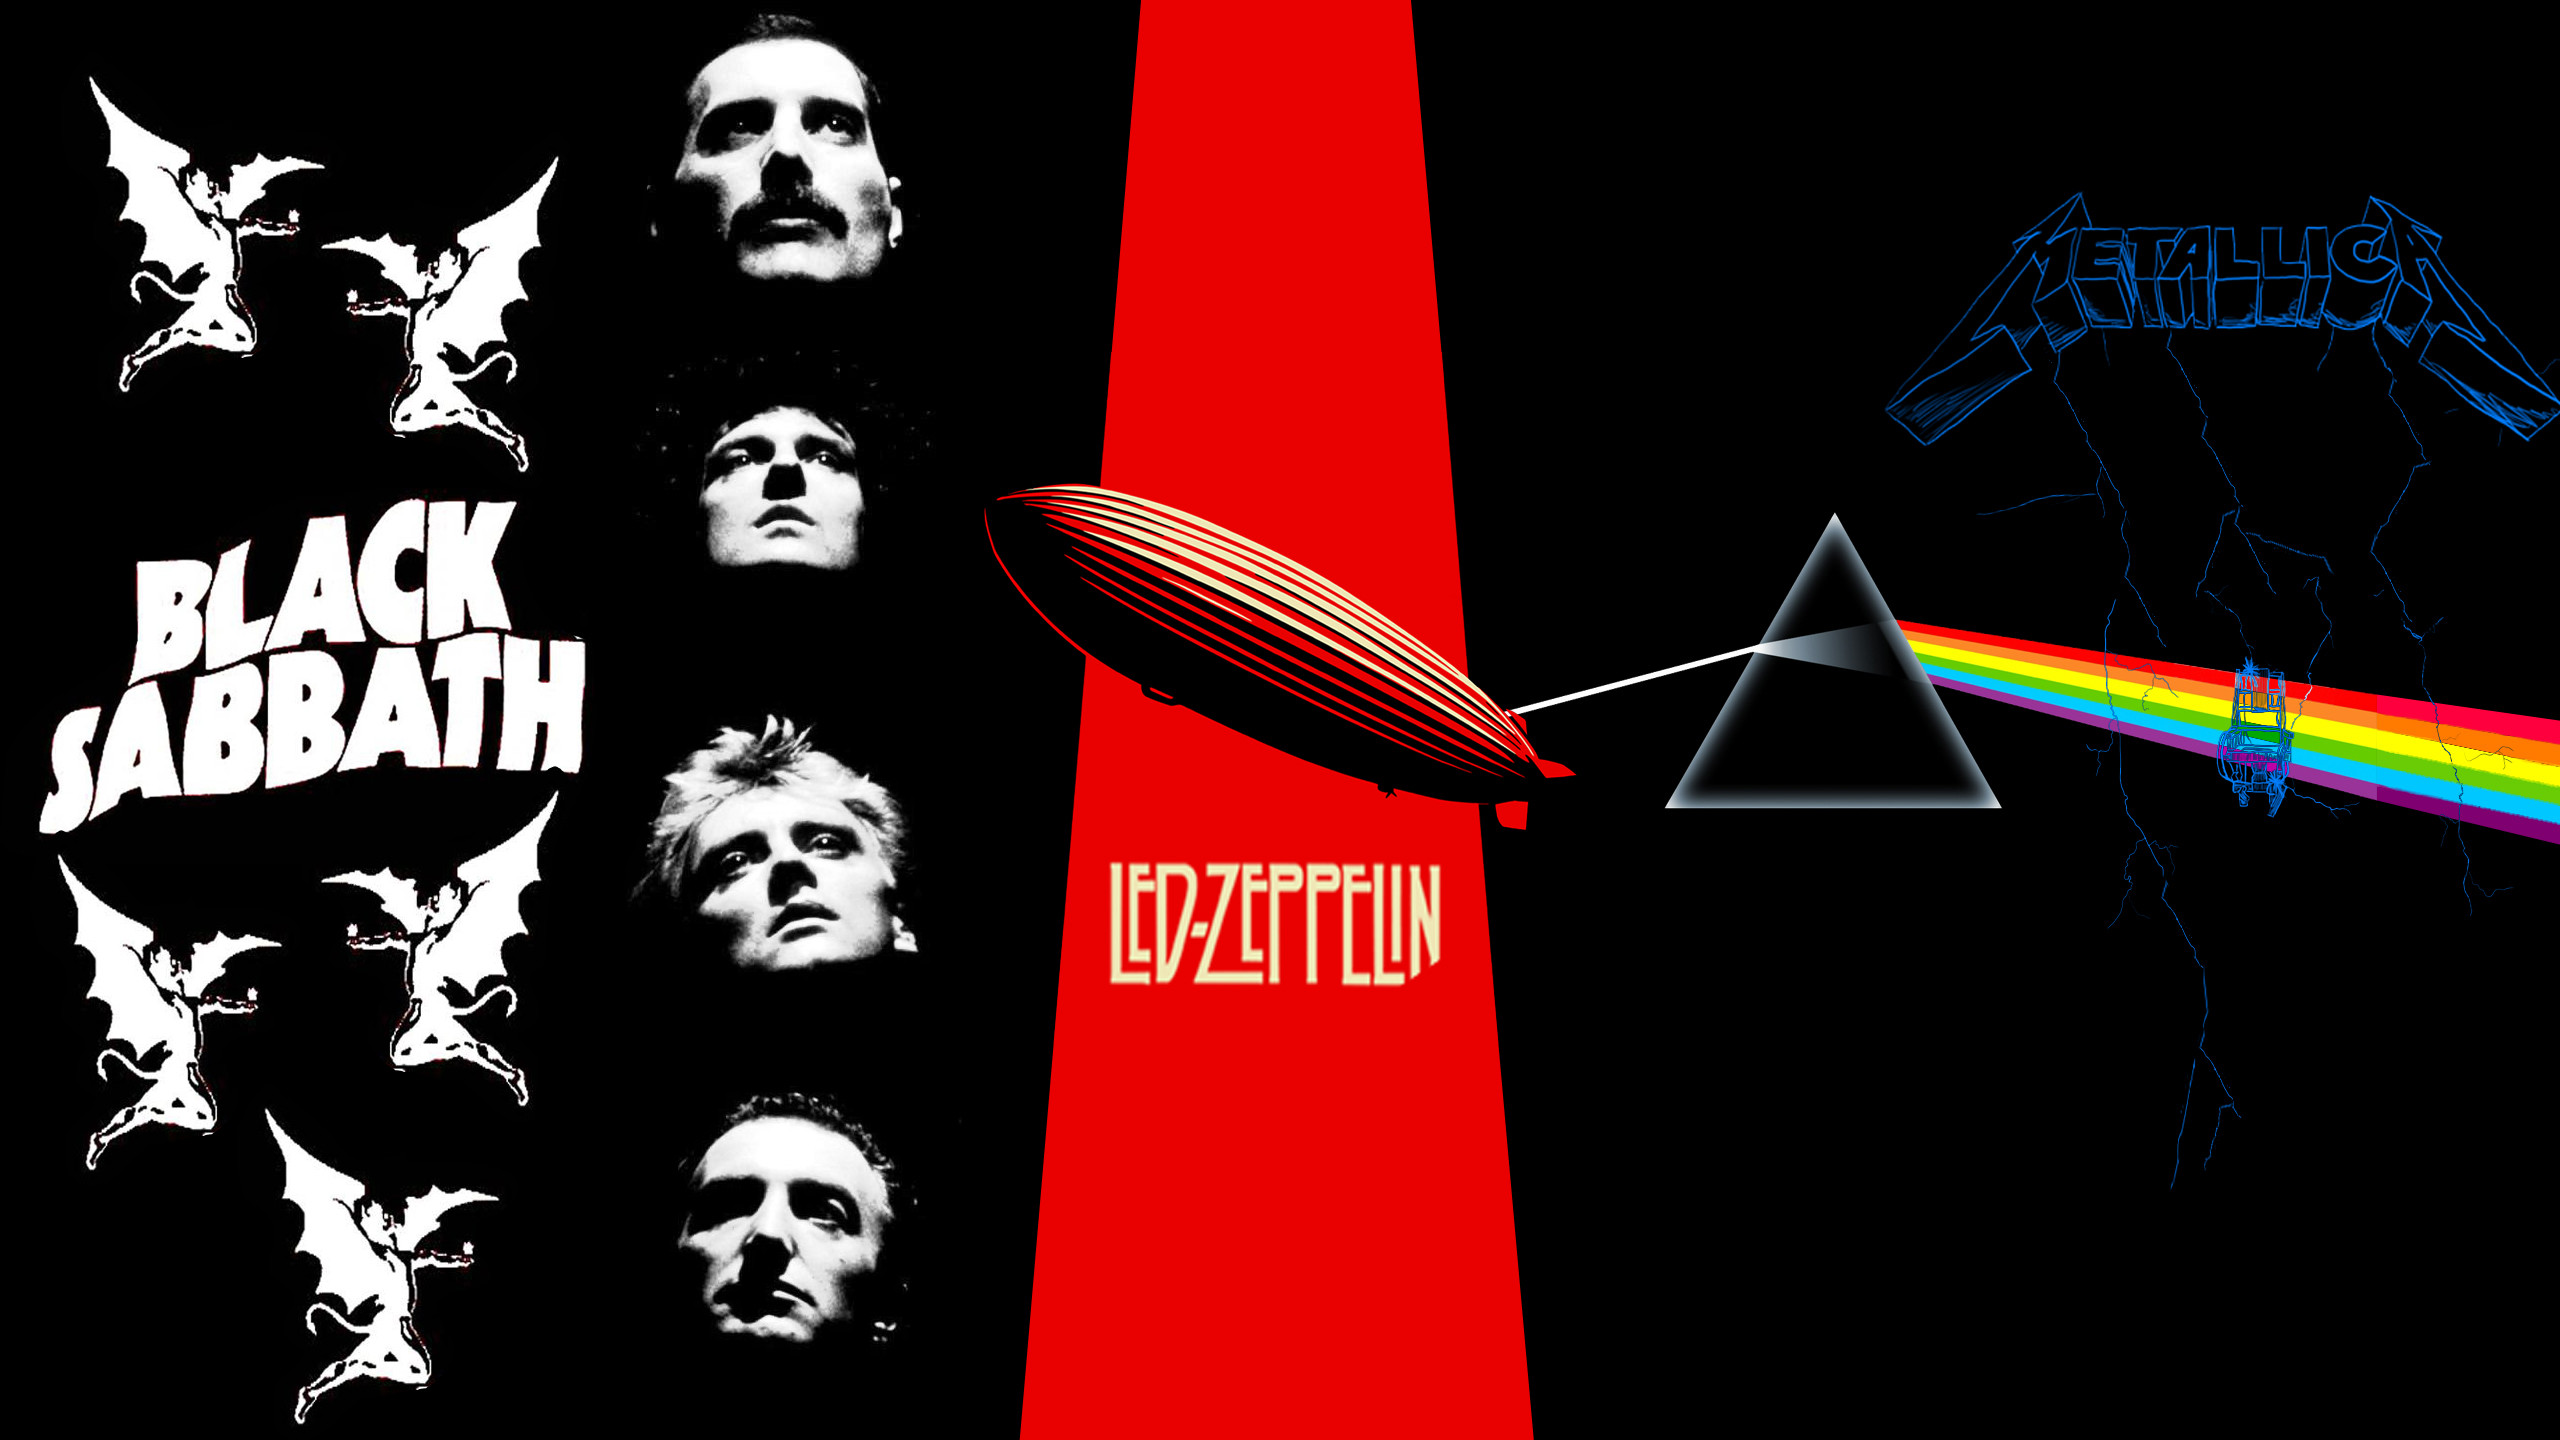 Led Zeppelin iPhone Wallpaper (46+ images)